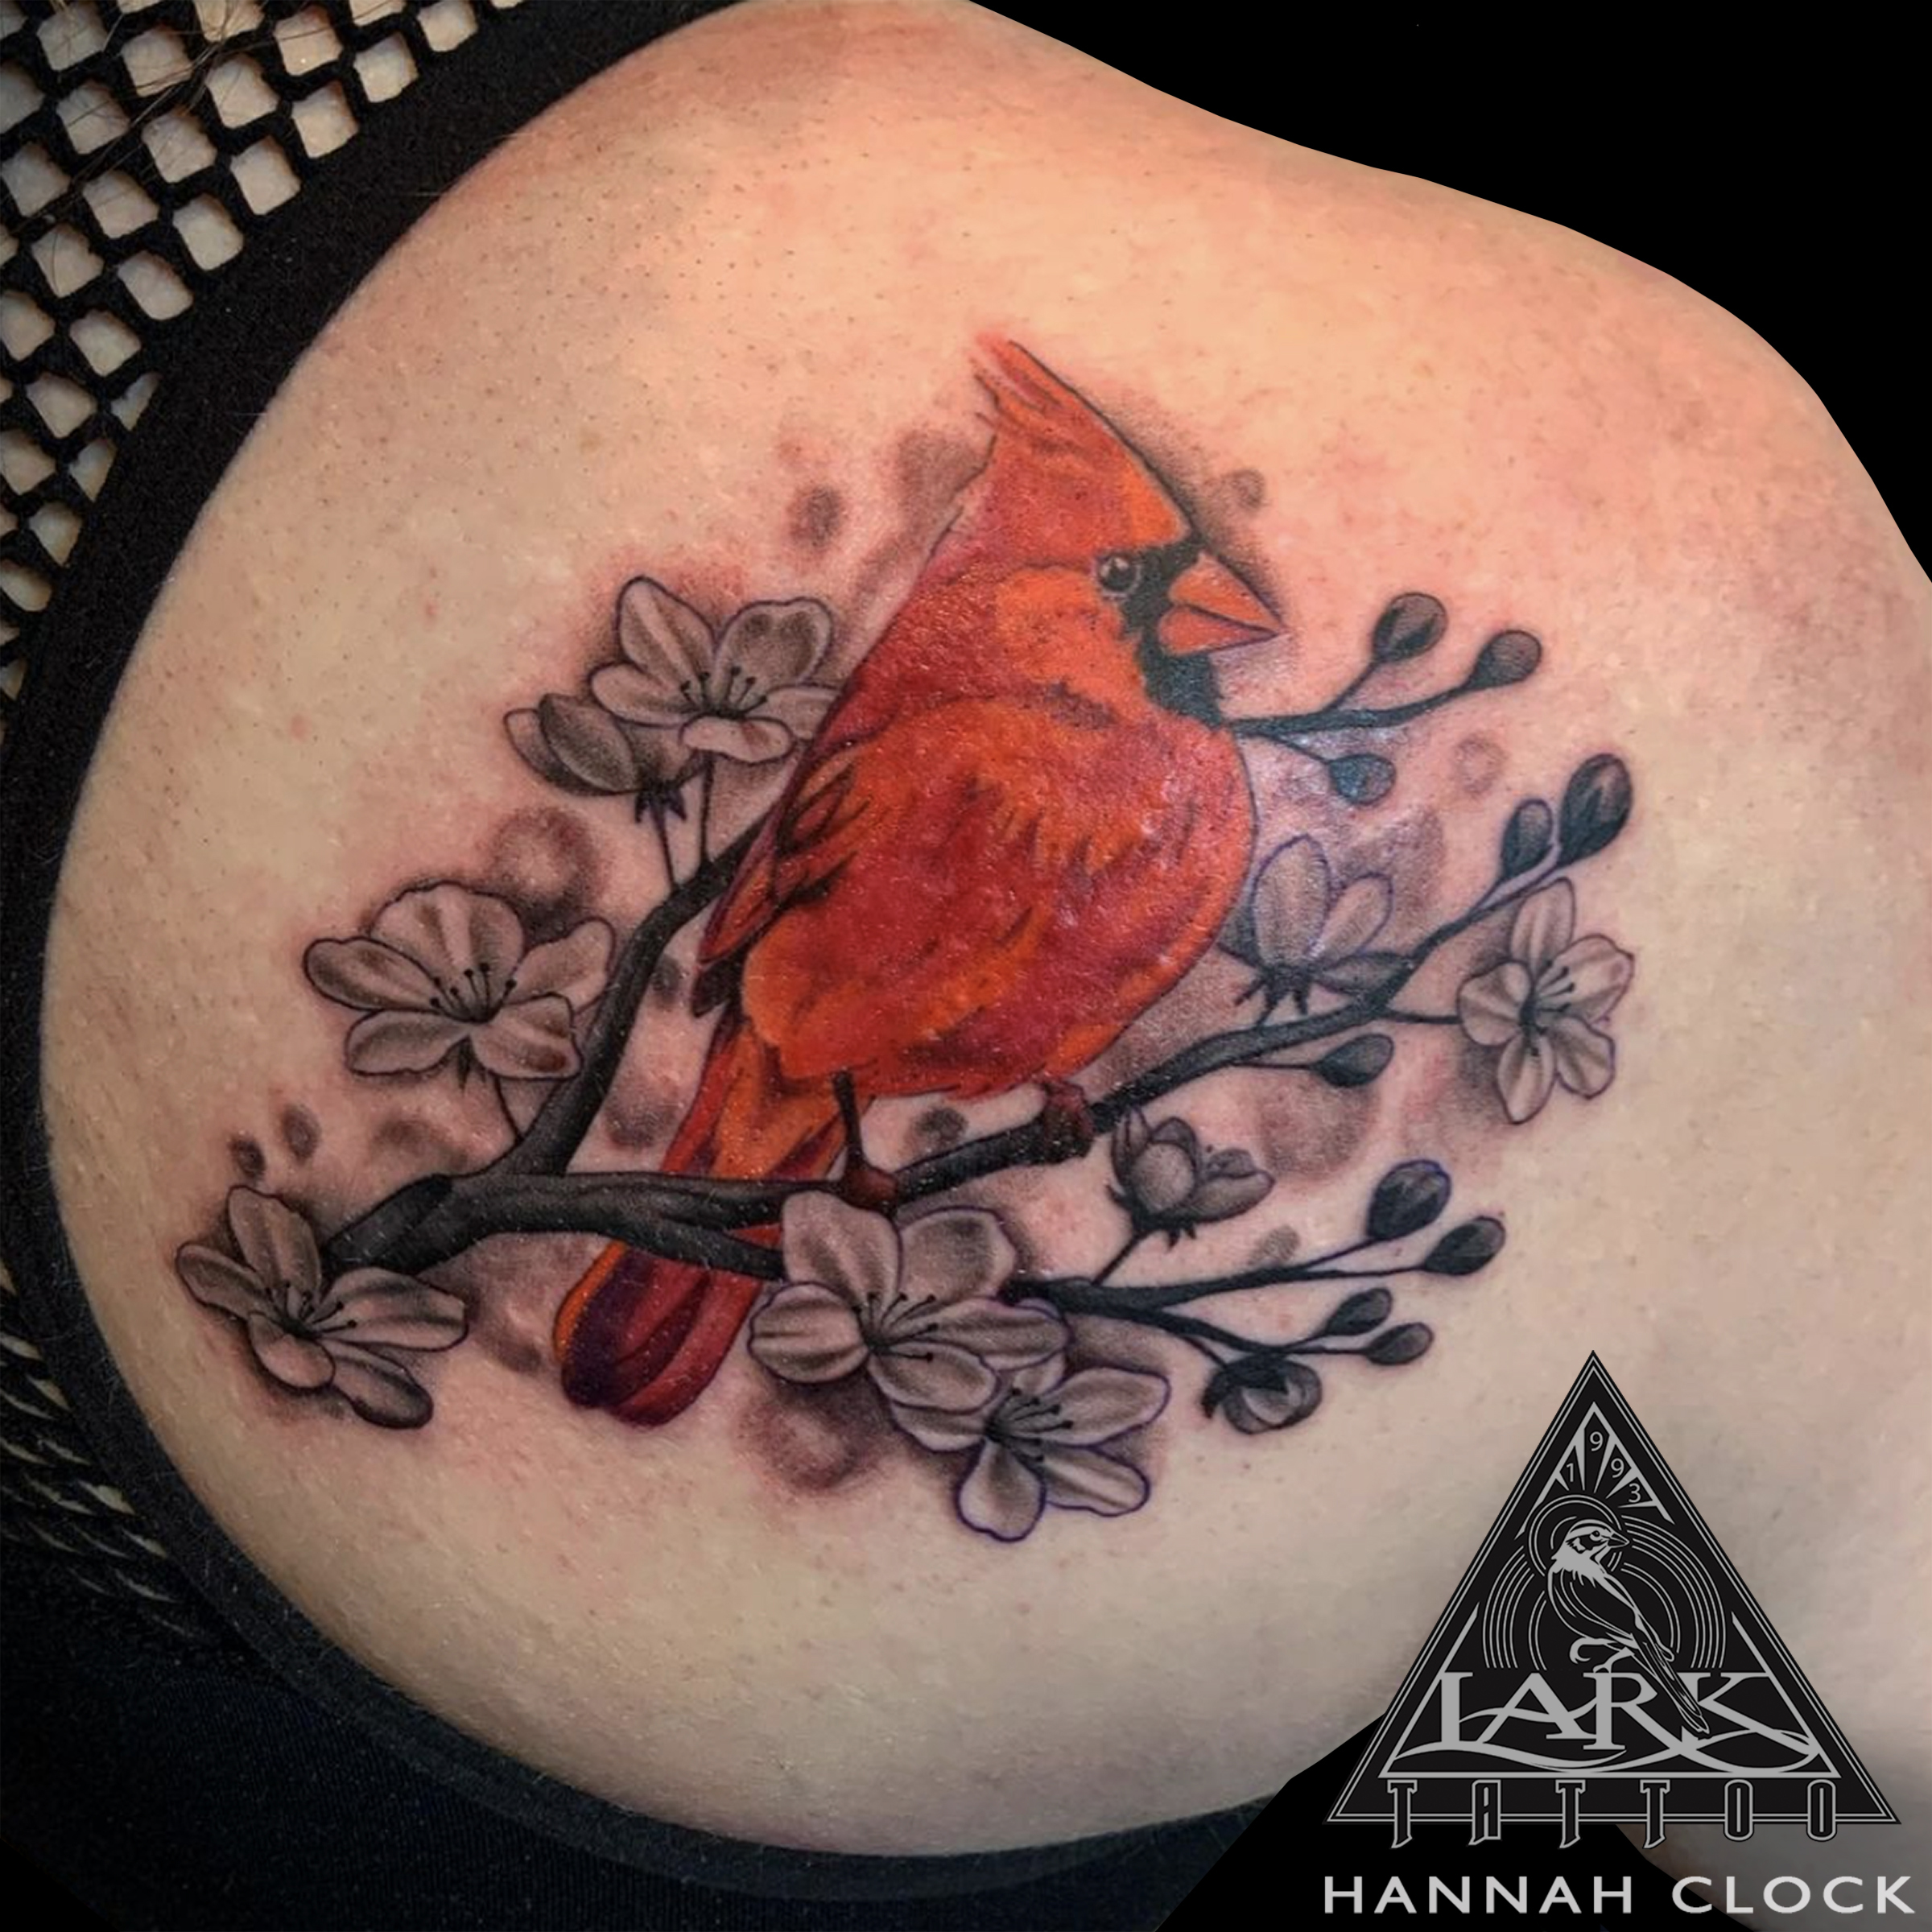 #LarkTattoo #HannahClock #HannahClockLarkTattoo #FemaleTattooer #FemaleArtist #LadyTattooer #Tattoo #Tattoos #Cardinal #CardinalTattoo #Bird #BirdTattoo #ColorTattoo #CherryBlossom #CherryBlossomTattoo #SolidInk #Feminine #FeminineTattoo #BeautifulTattoo #TattooArtist #Tattoist #Tattooer #LongIslandTattooArtist #LongIslandTattooer #LongIslandTattoo #TattooOfTheDay #Tat #Tats #Tatts #Tatted #Inked #Ink #TattooInk #AmazingInk #AmazingTattoo #BodyArt #LarkTattooWestbury #Westbury #LongIsland #NY #NewYork #USA #Art #Tattedup #InkedUp #LarkTattoos